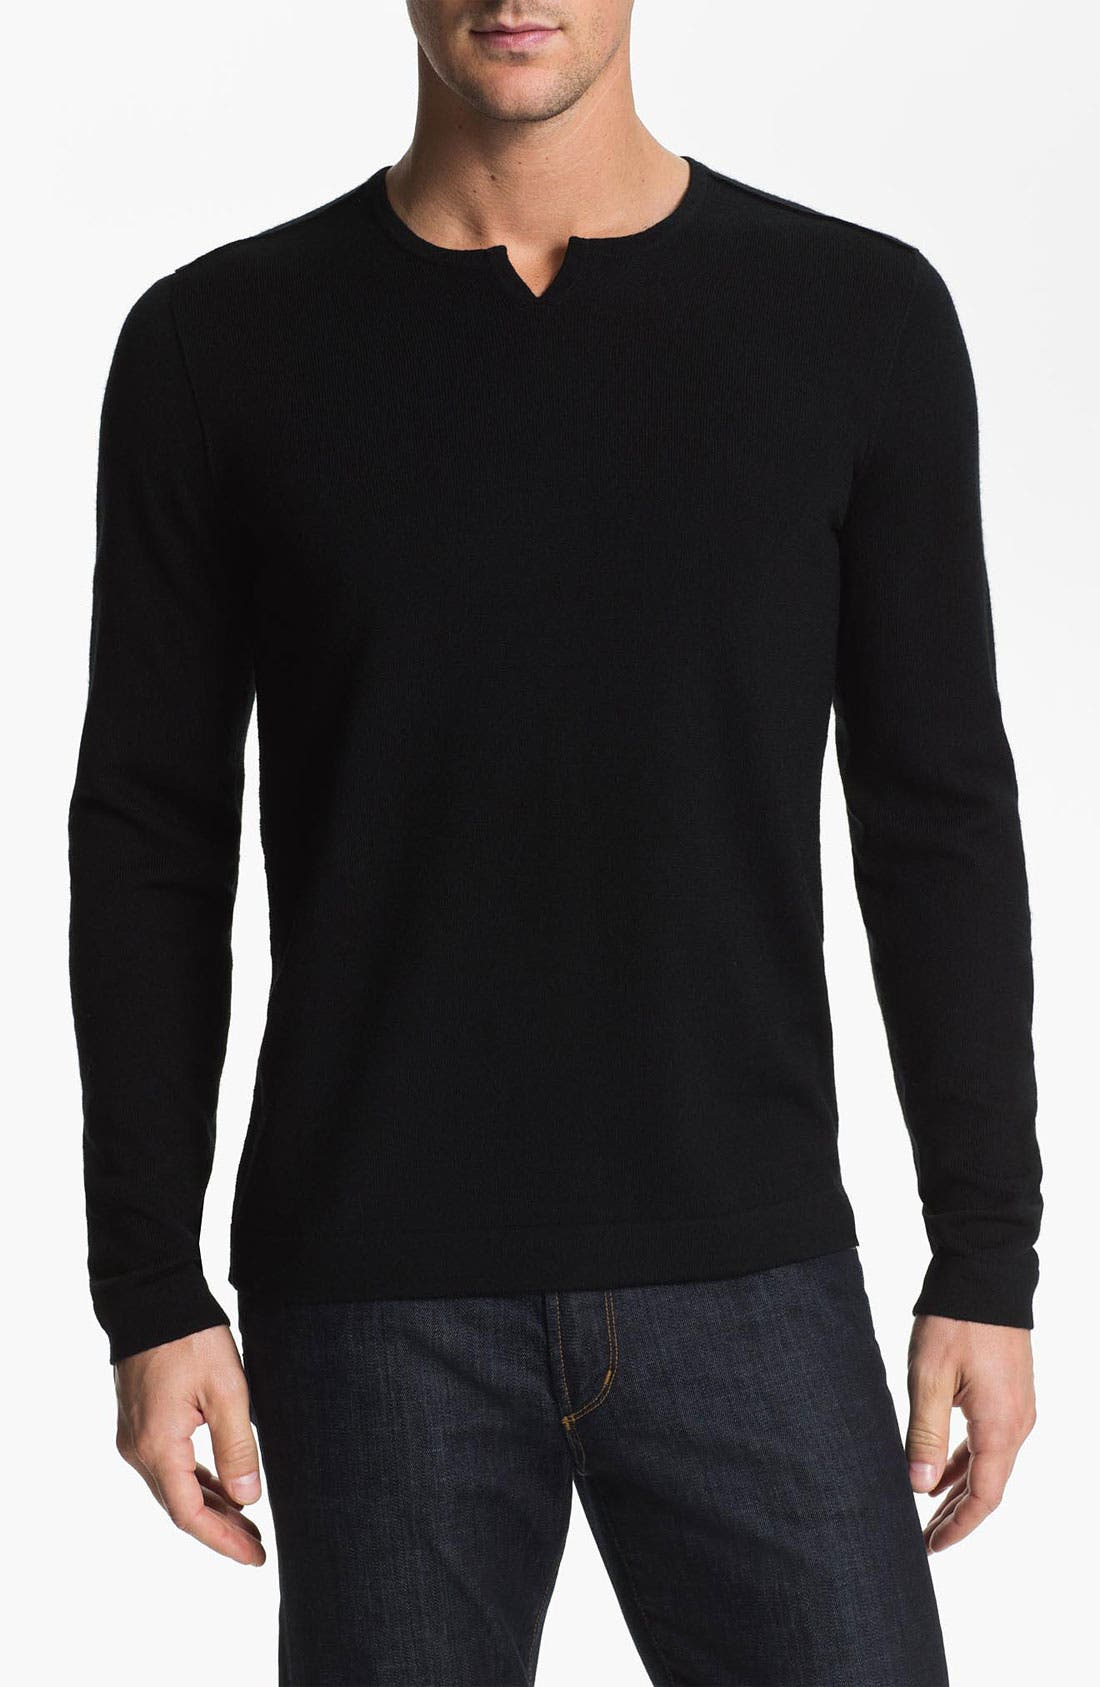 Alternate Image 1 Selected - John Varvatos Star USA Trim Fit Crewneck Sweater